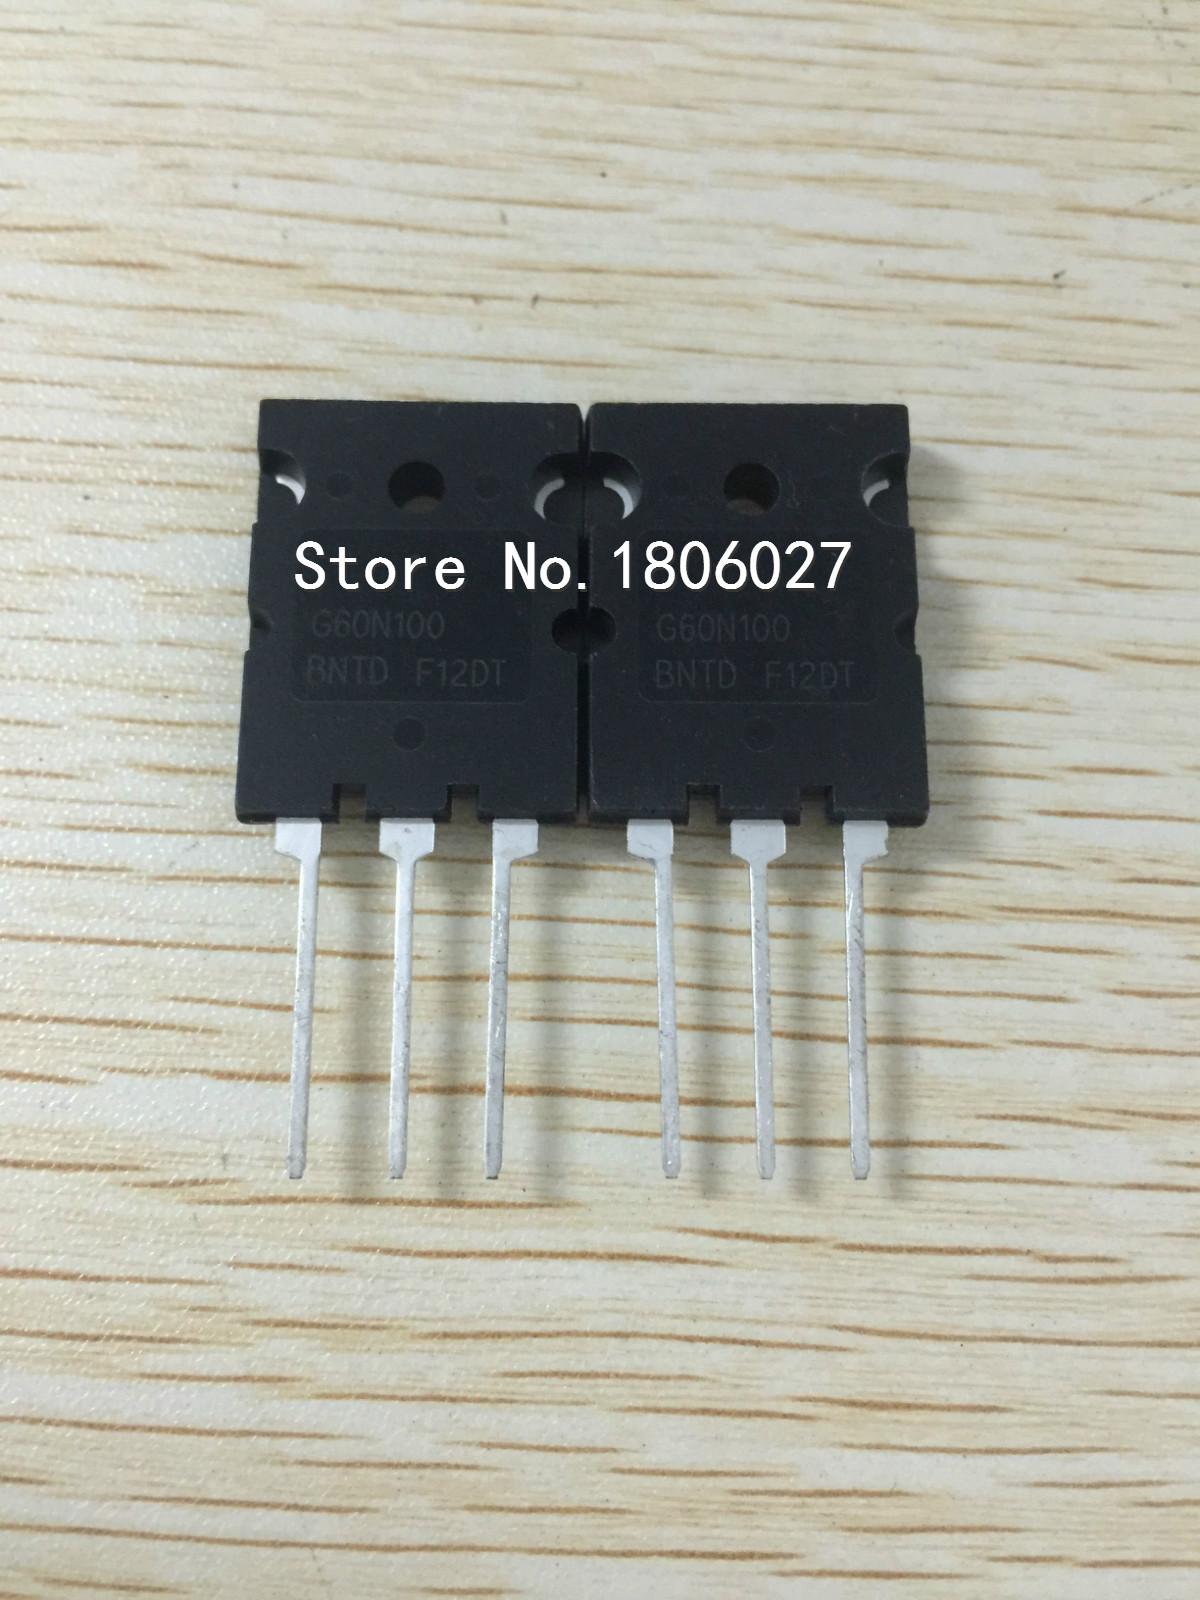 Send free 20PCS <font><b>G60N100BNTD</b></font> TO-264 New original spot selling integrated circuits image